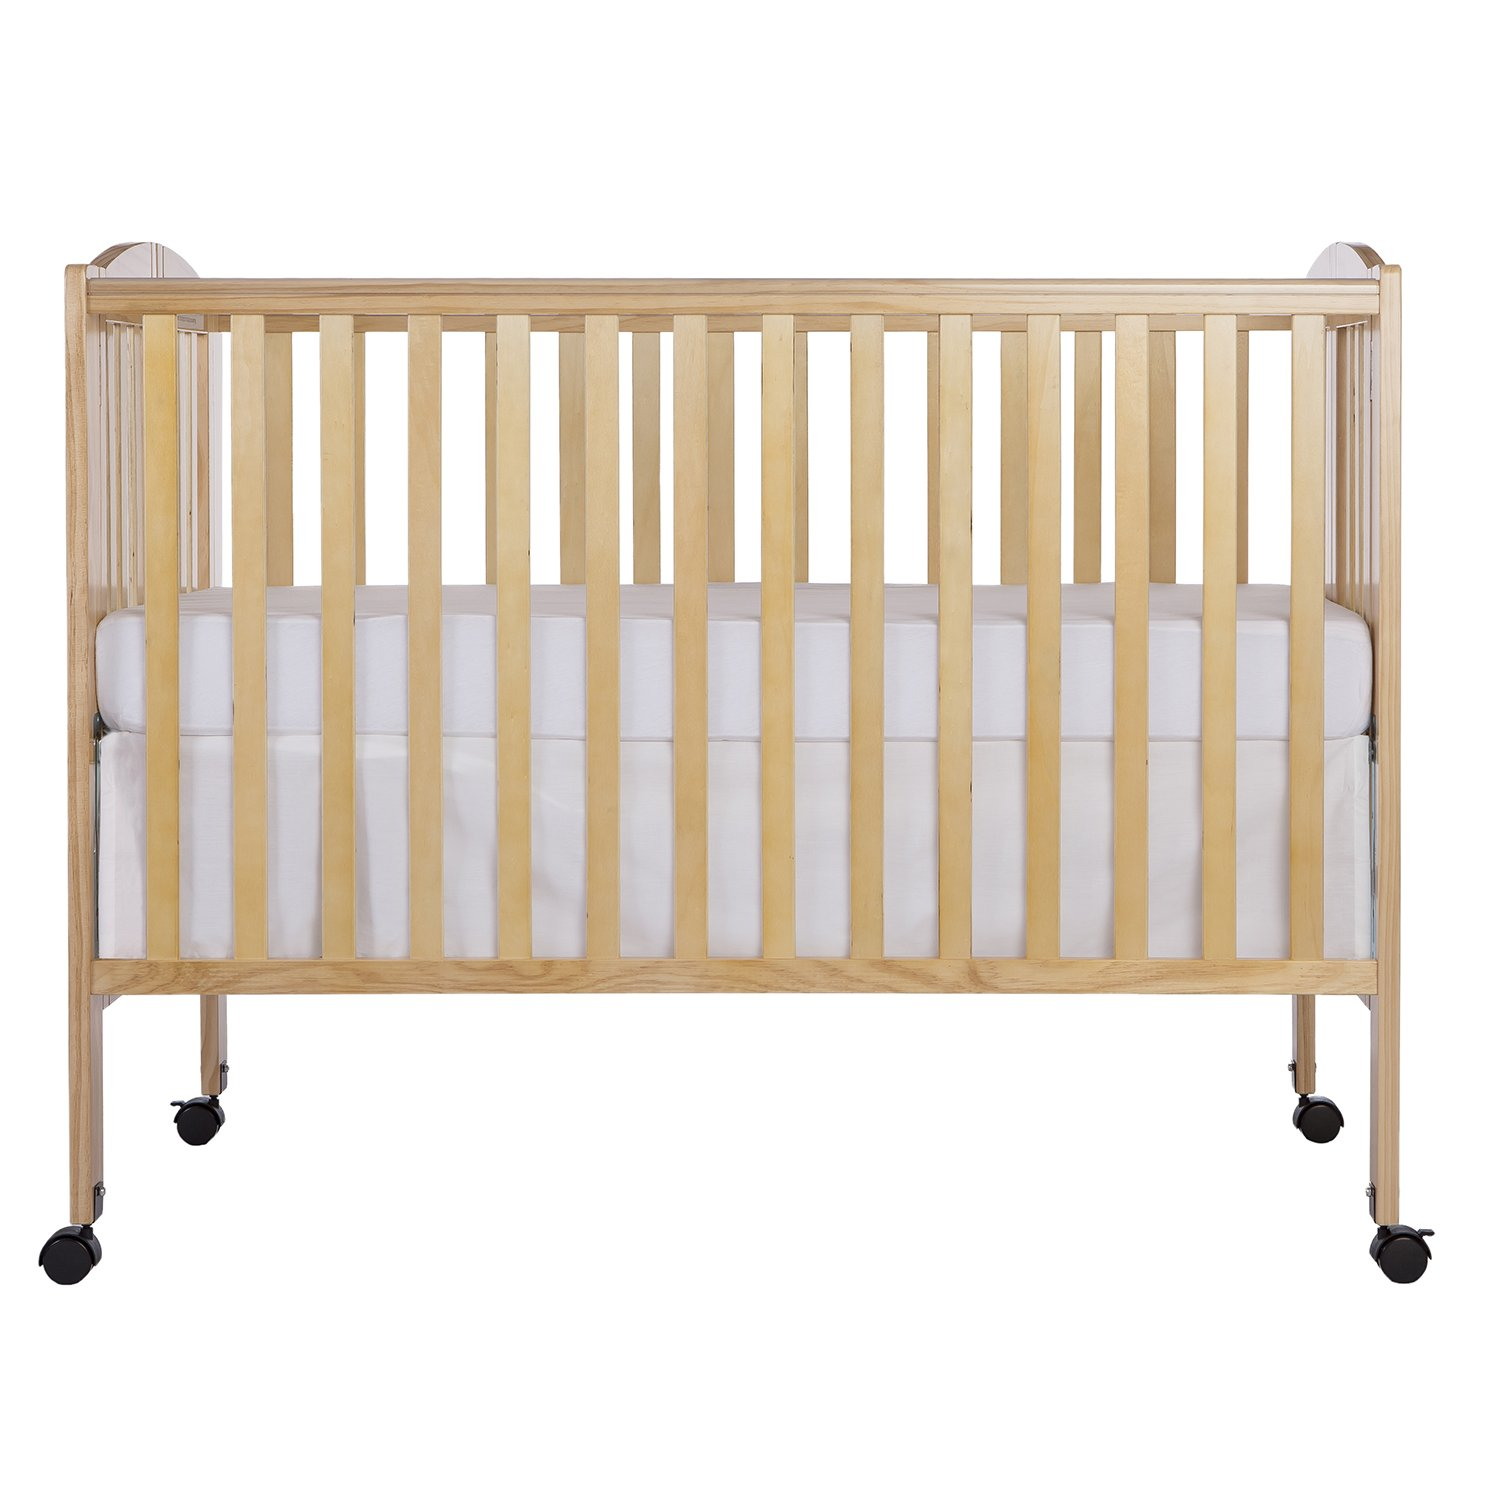 Crib for babies online india - Amazon Com Dream On Me Full Size 2 In 1 Folding Stationary Side Crib Natural Crib Portable Baby